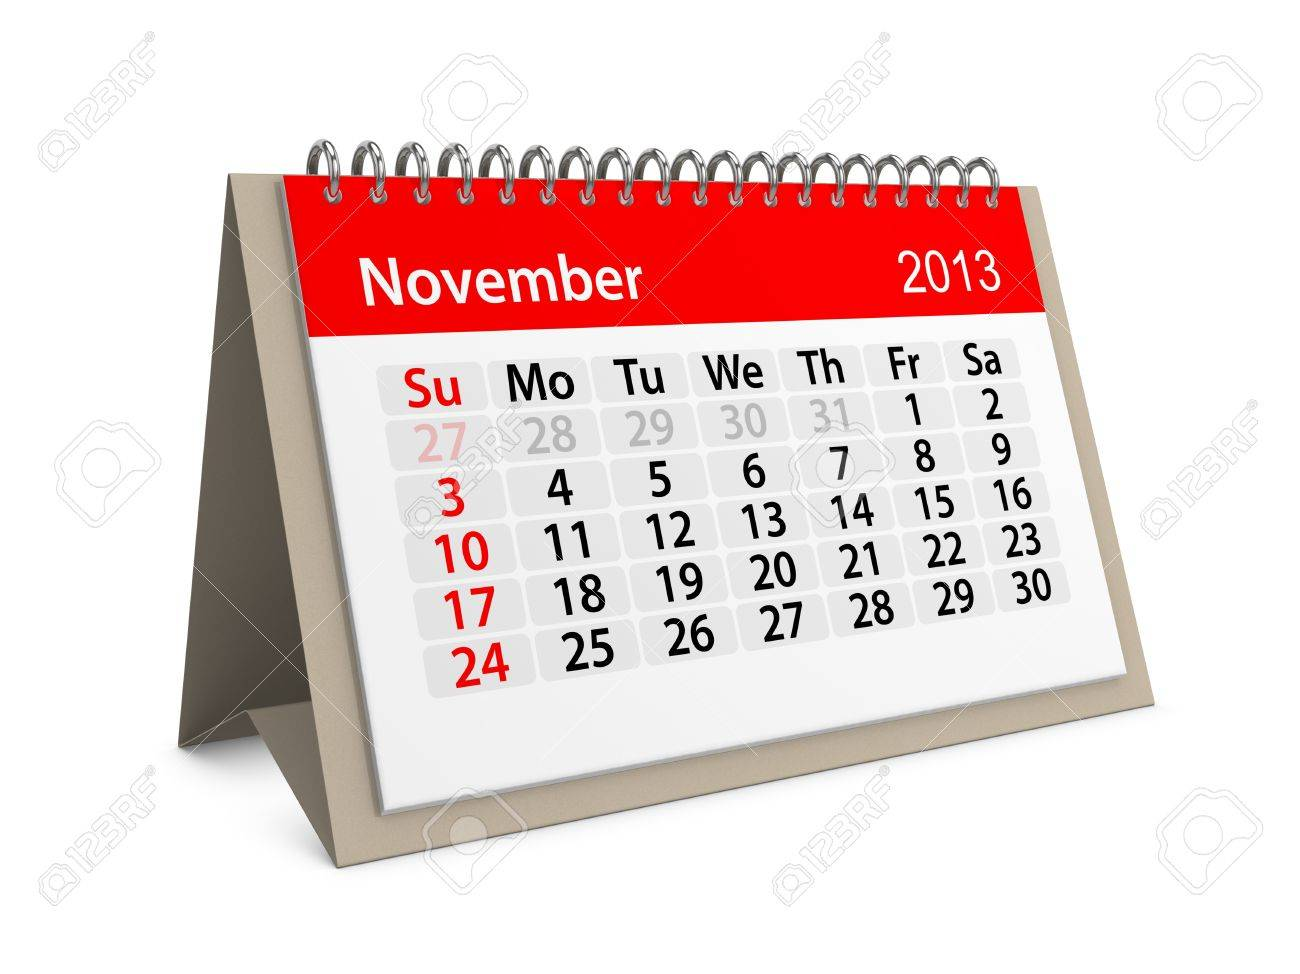 Monthly calendar for New Year 2013  November Stock Photo - 16555209